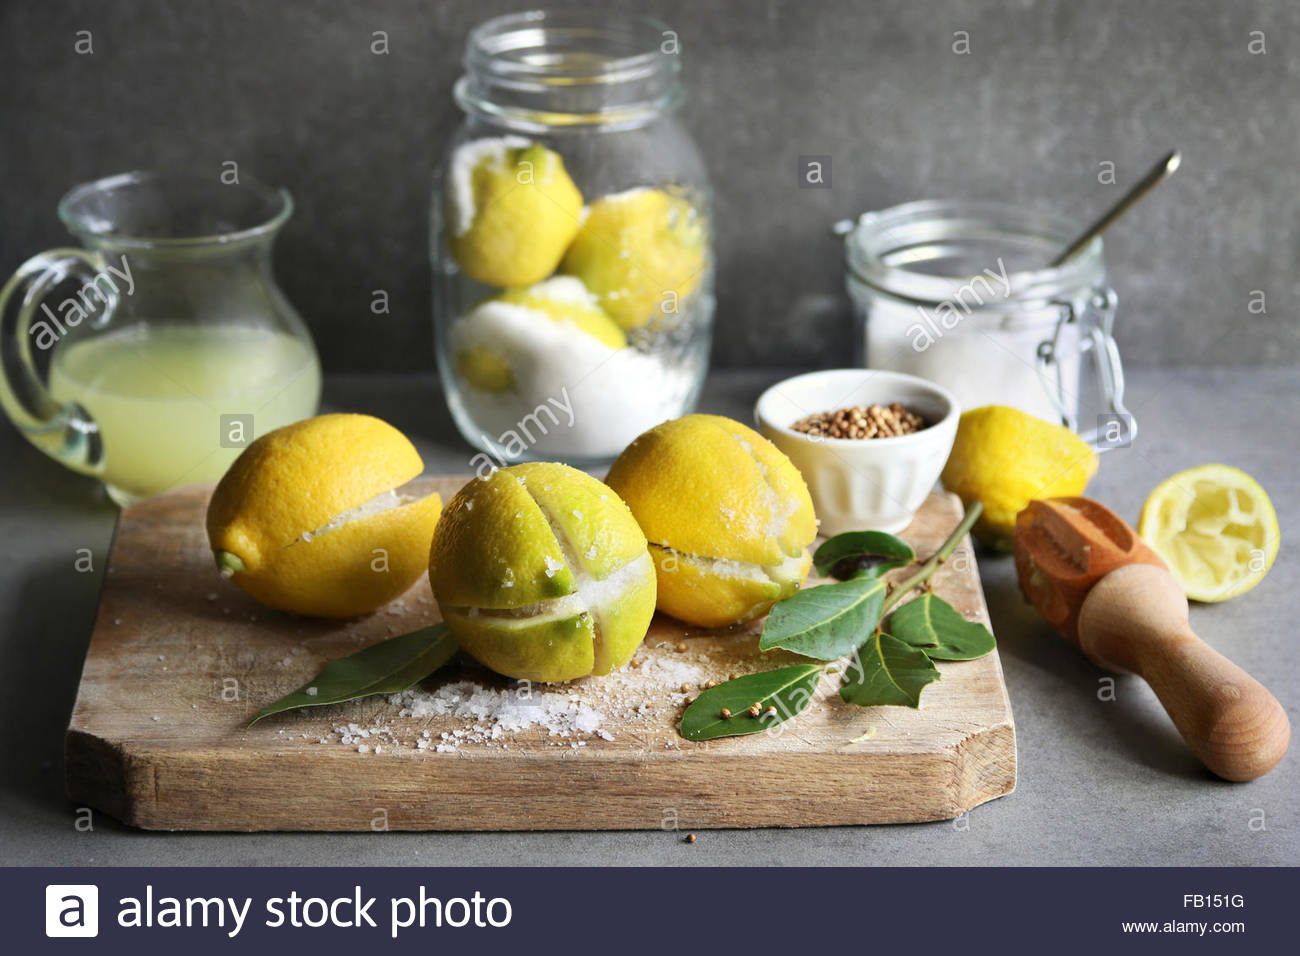 Preserved lemons with salt on a wooden board with a jar of lemon juice and spices on background - Stock Image